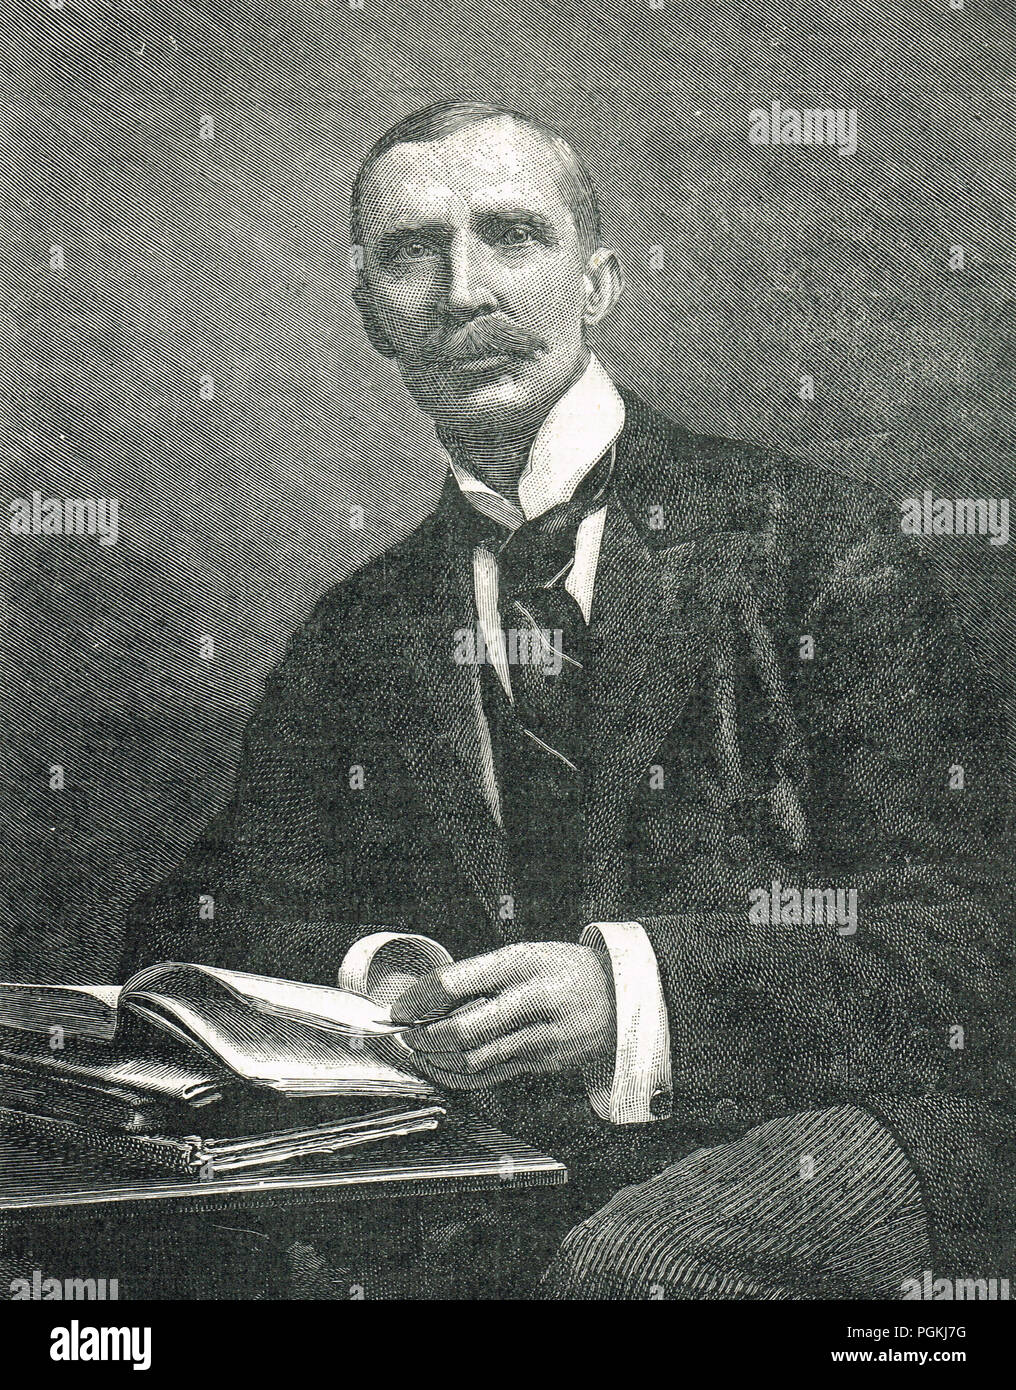 Sir George Dashwood Taubman Goldie, Manx administrator, played a major role in the founding of Nigeria - Stock Image